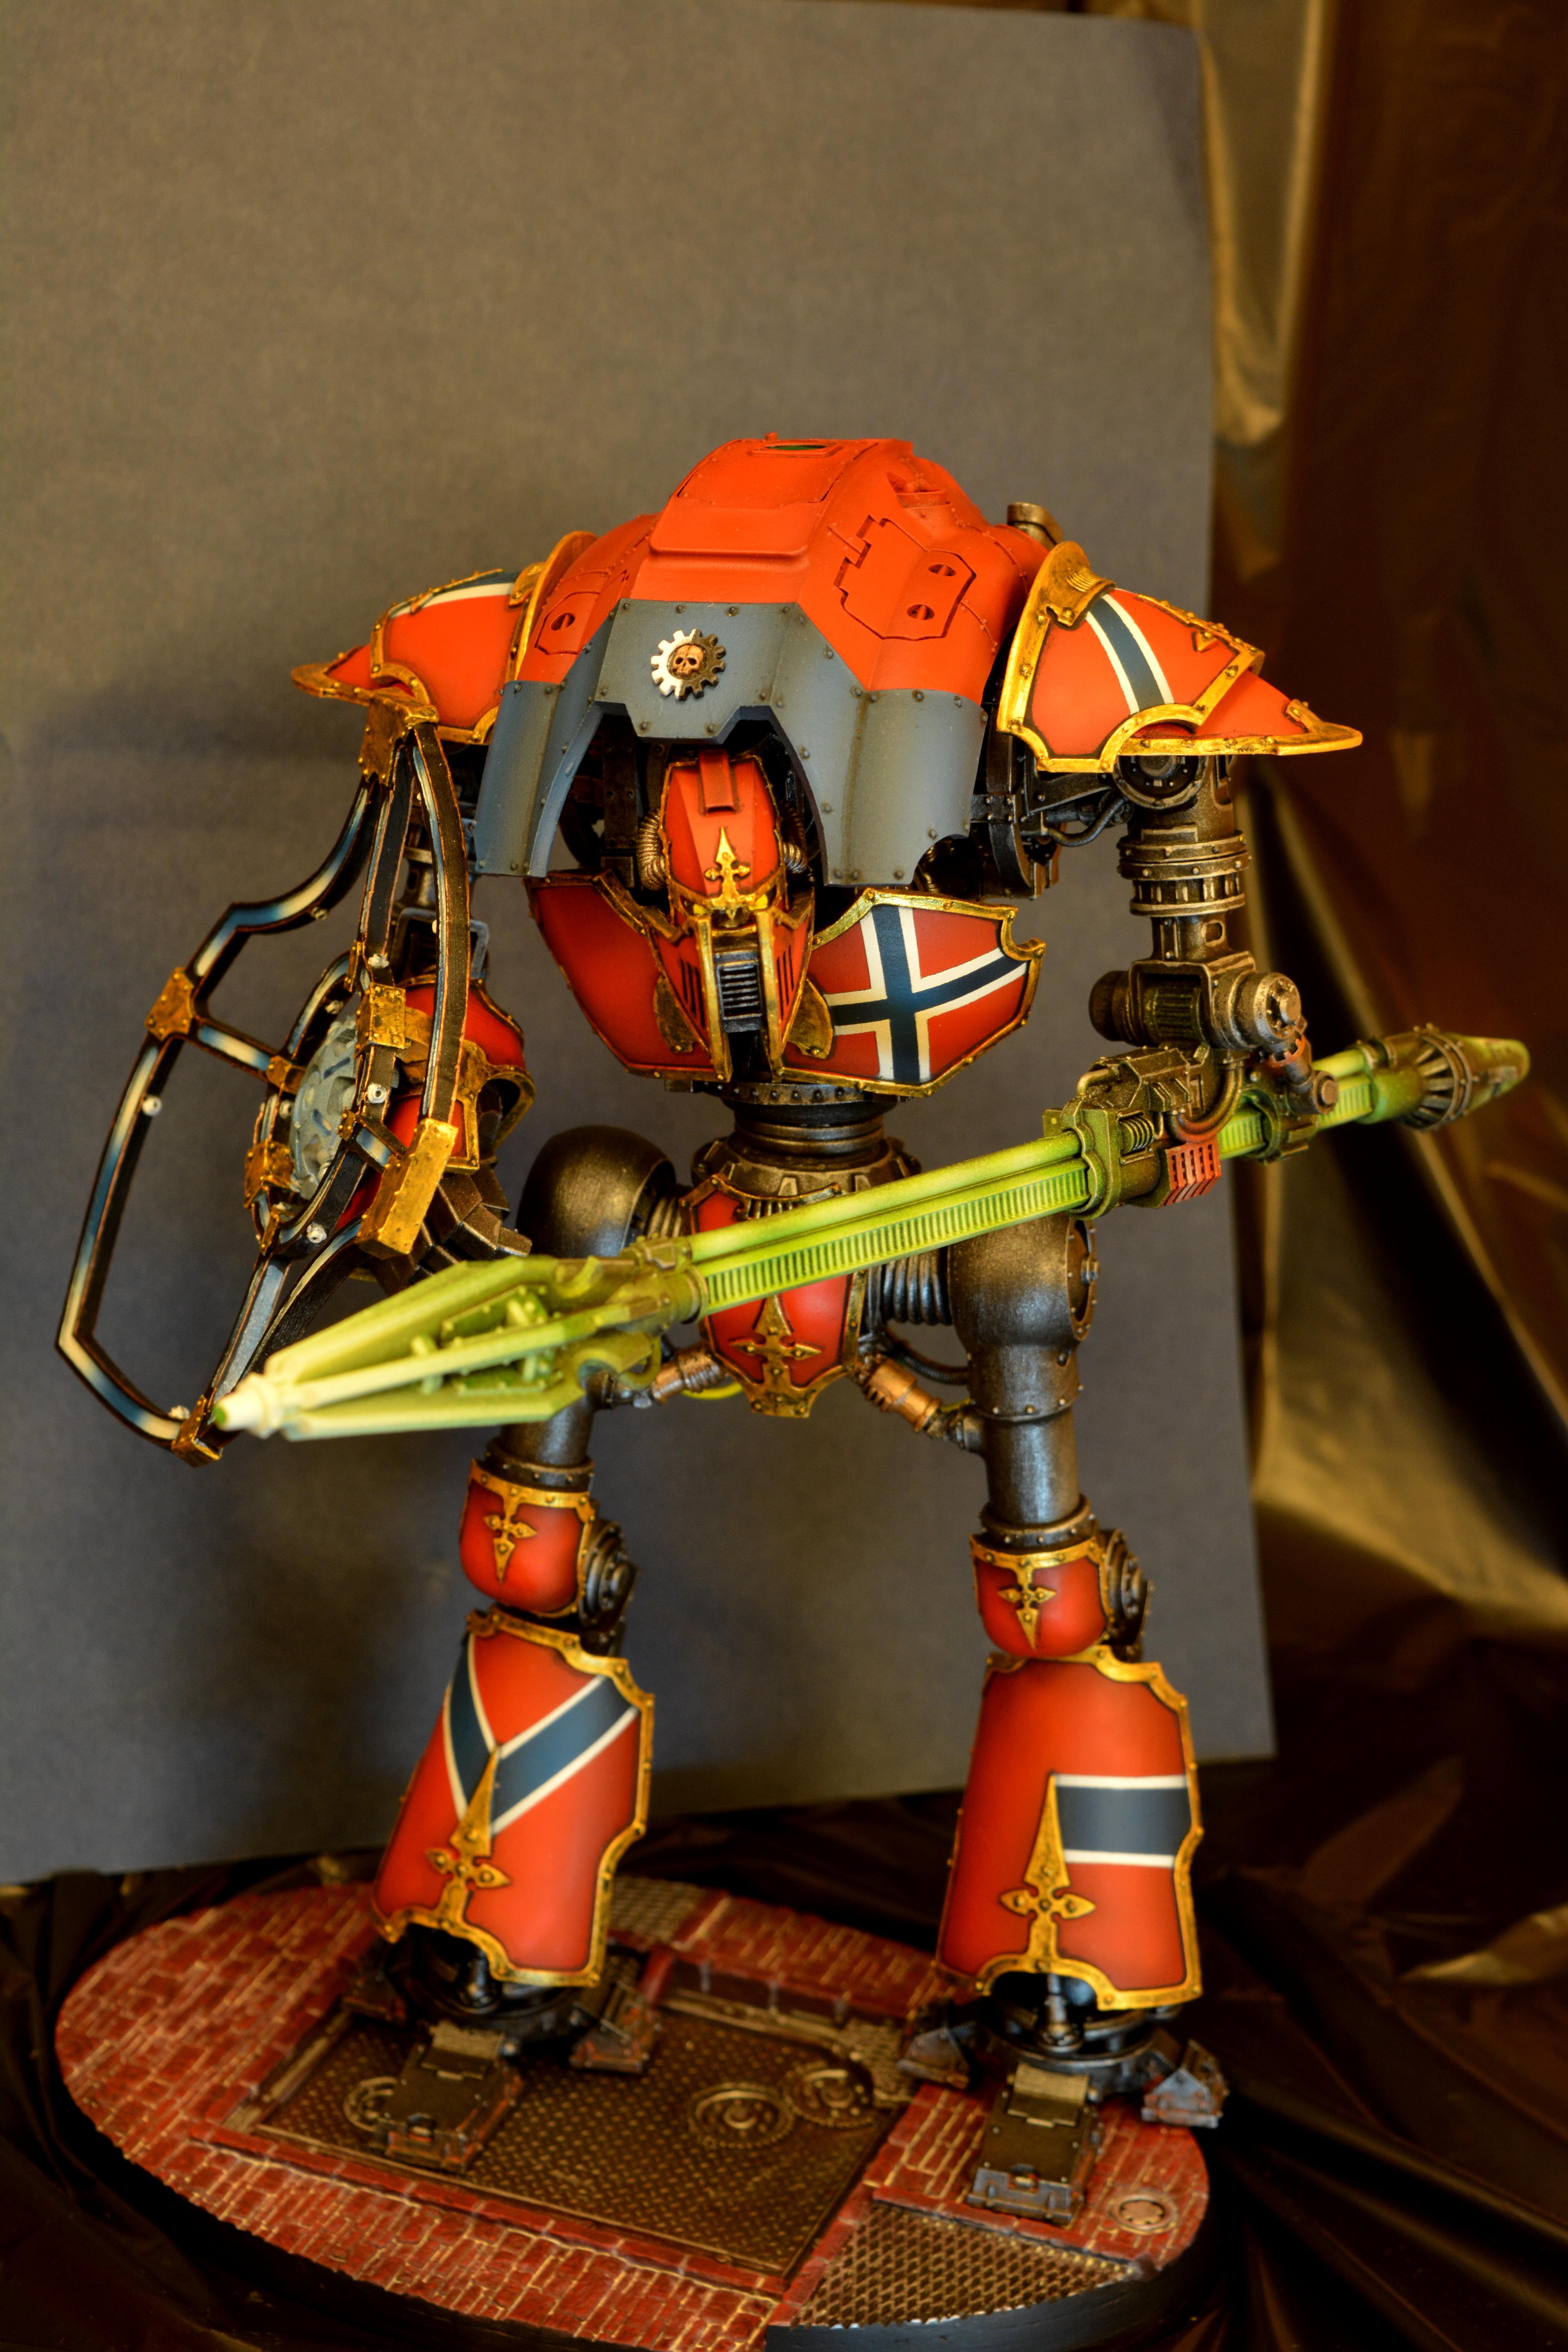 Forge, Forge World, Imperial, Imperium, Iom, Knight Lacner, Knight Lancer, Knights, Lancer, Titan, World